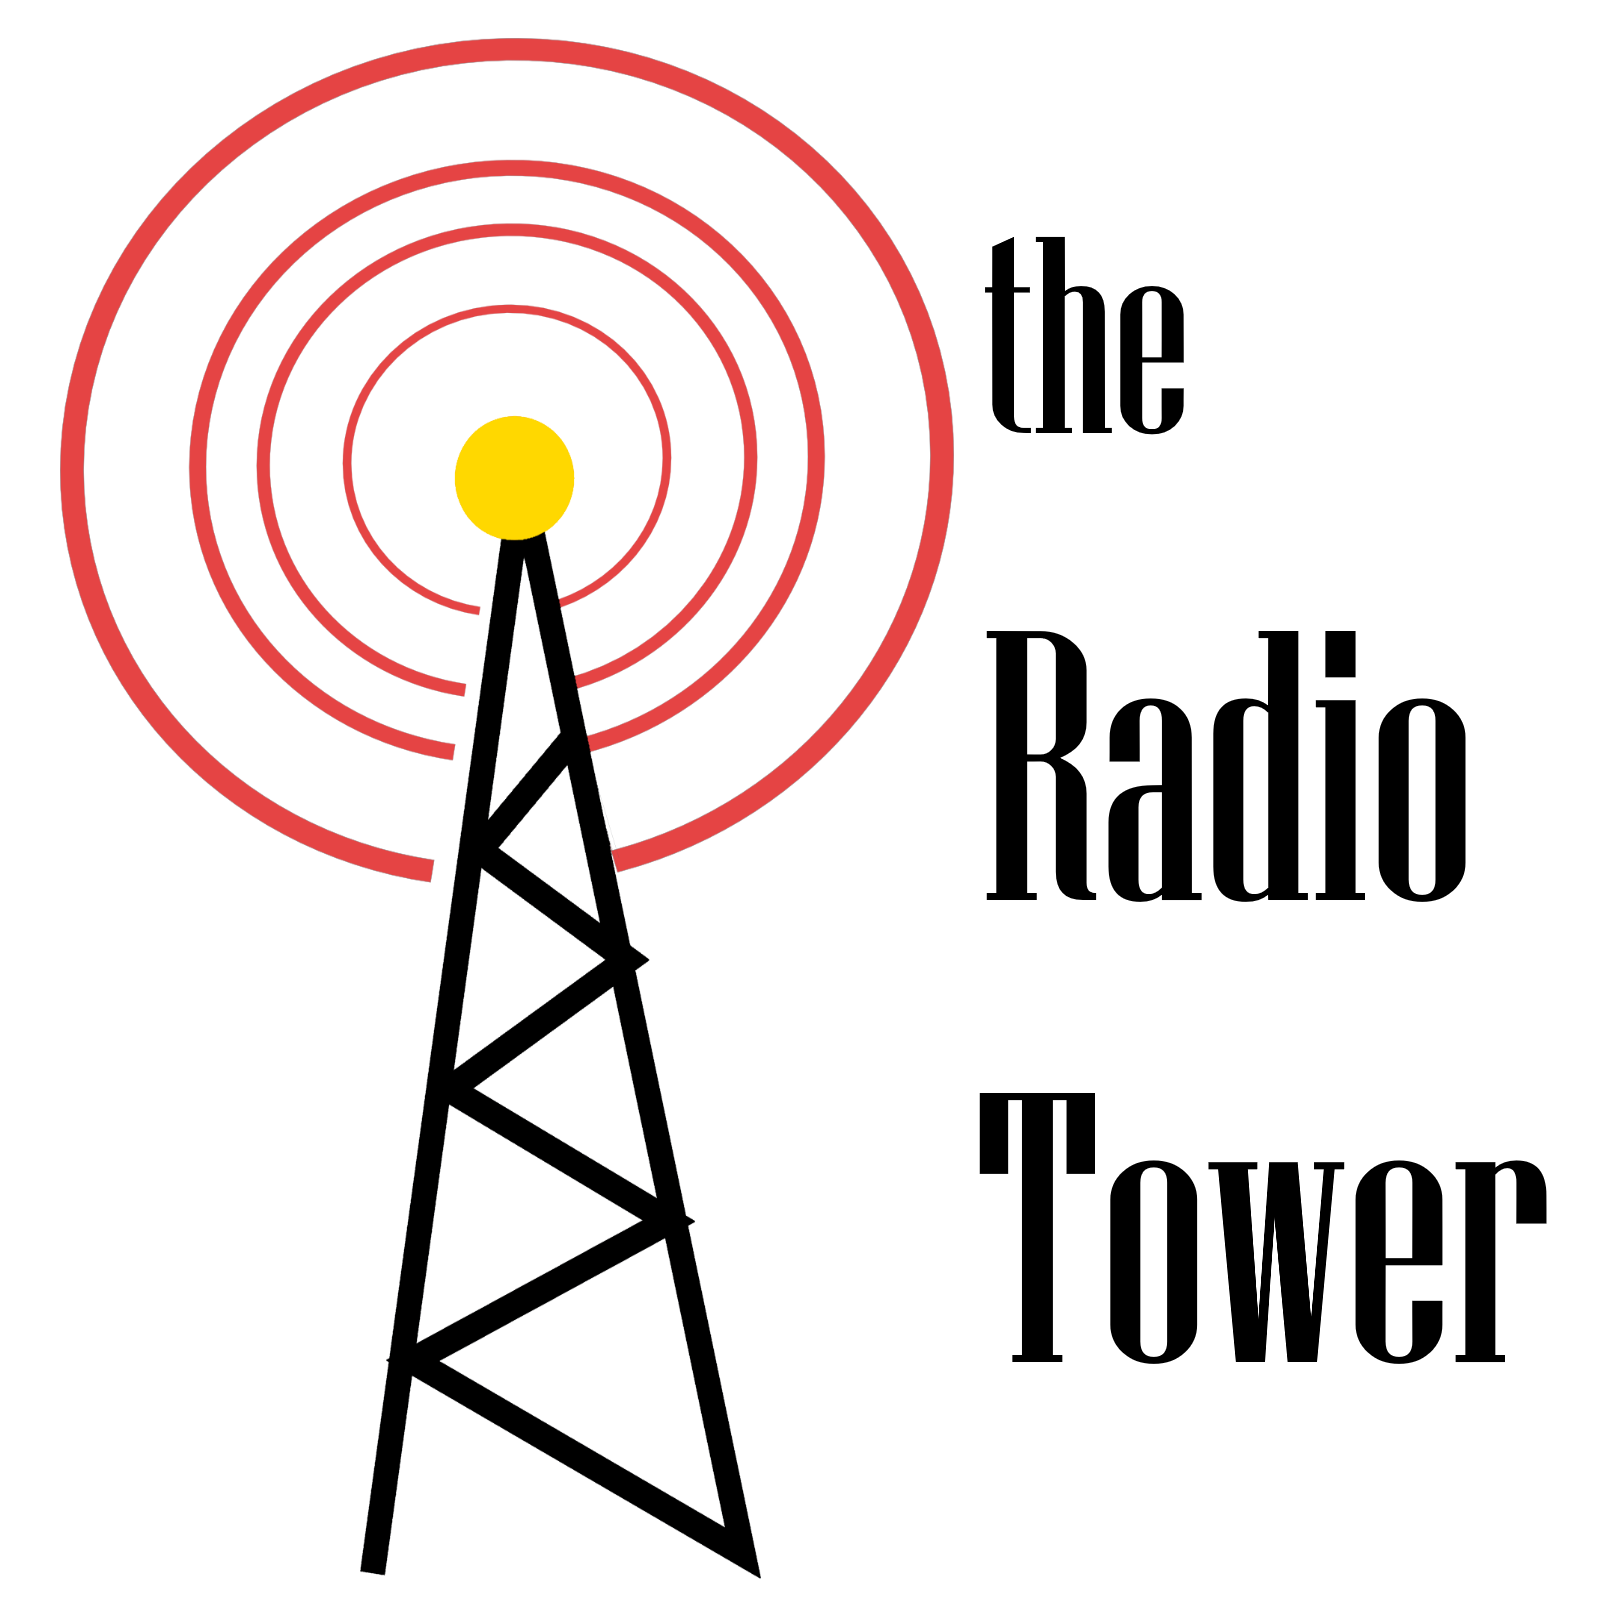 Radio Tower #21: Larry Davidson show art